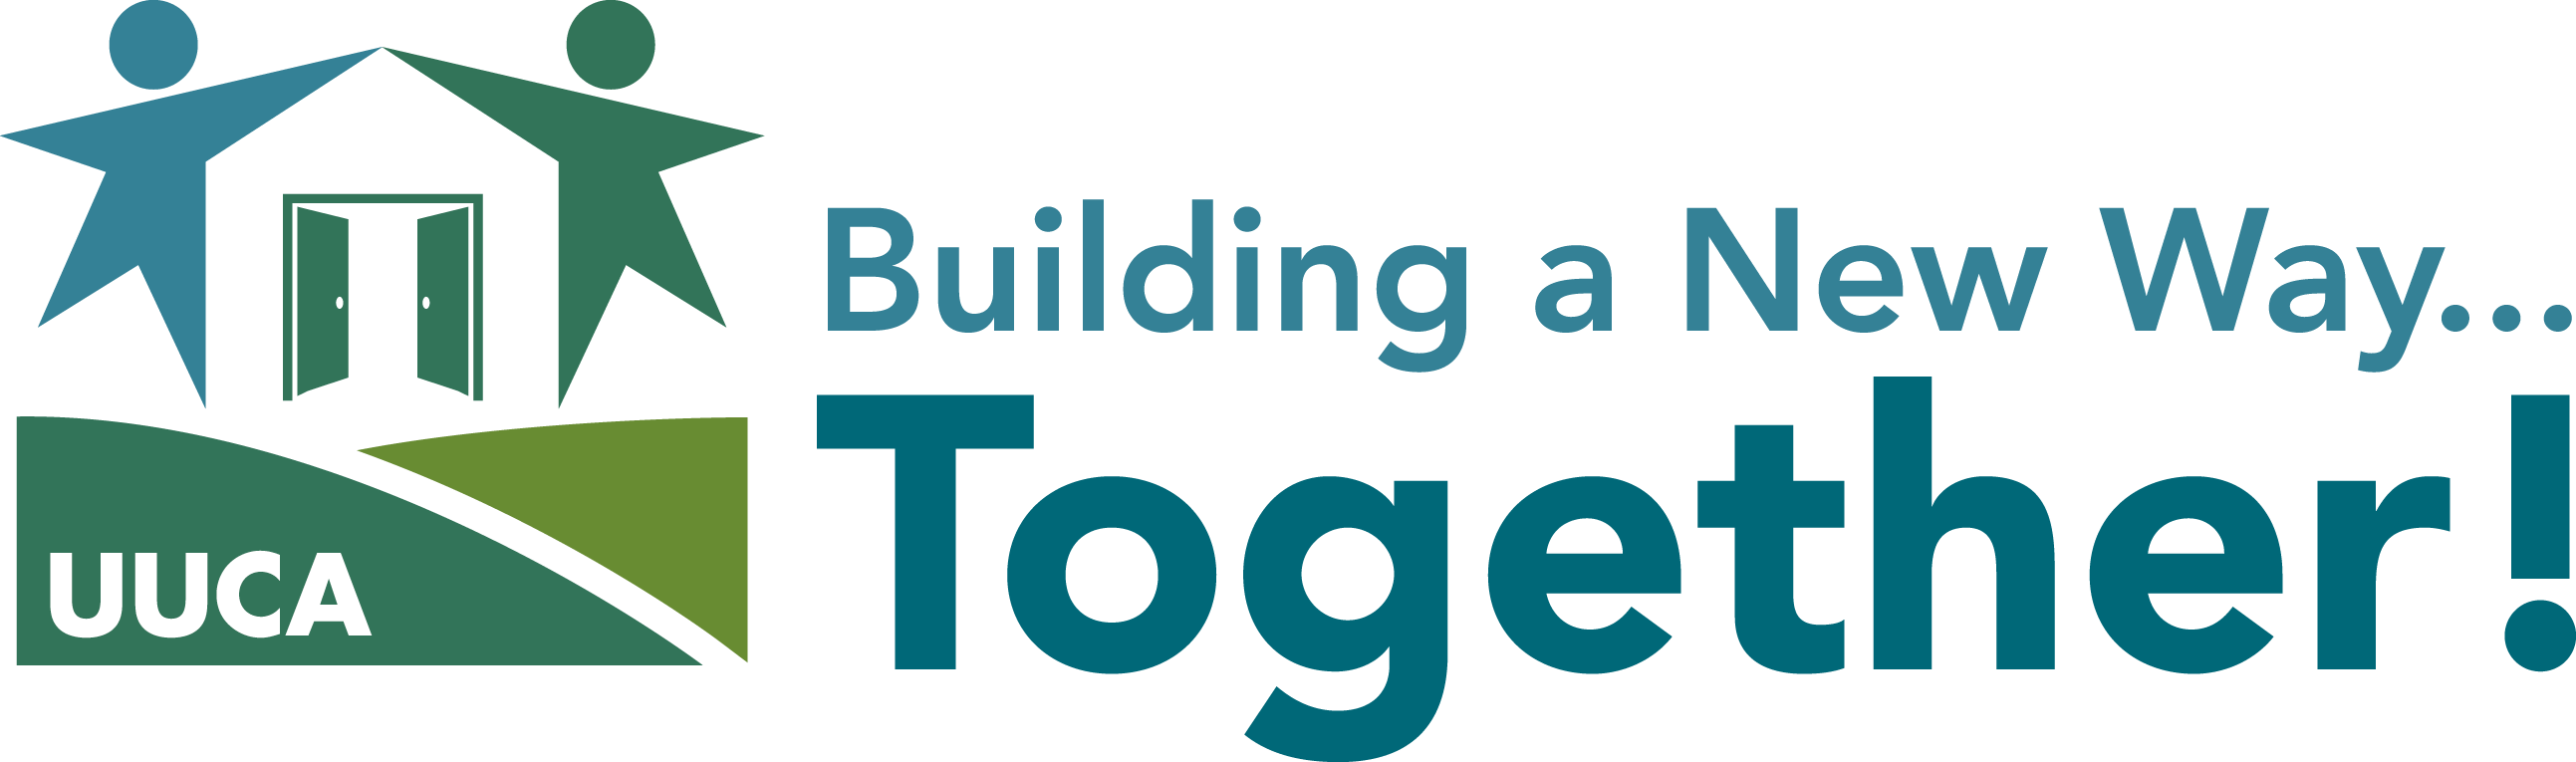 Building A New Way Together